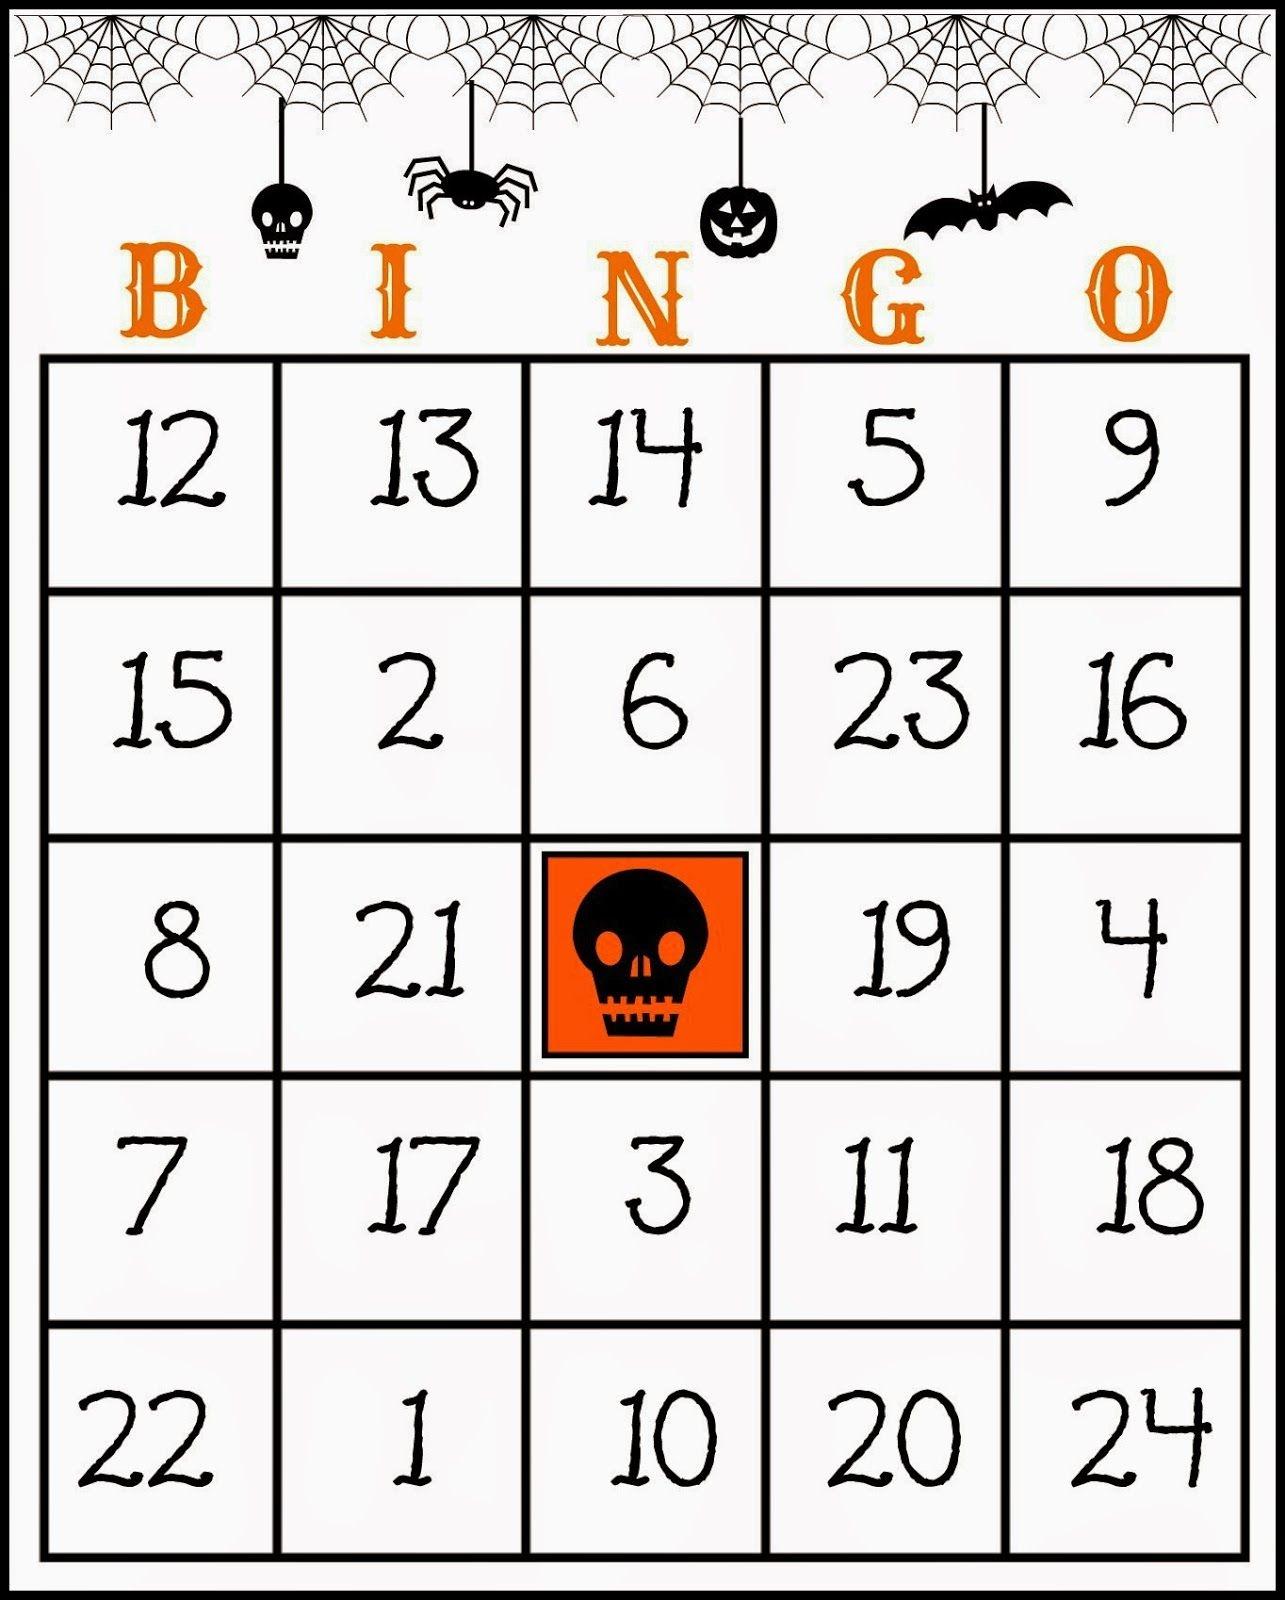 Crafty In Crosby: Free Printable Halloween Bingo Game | Halloween - Free Printable Halloween Bingo Cards